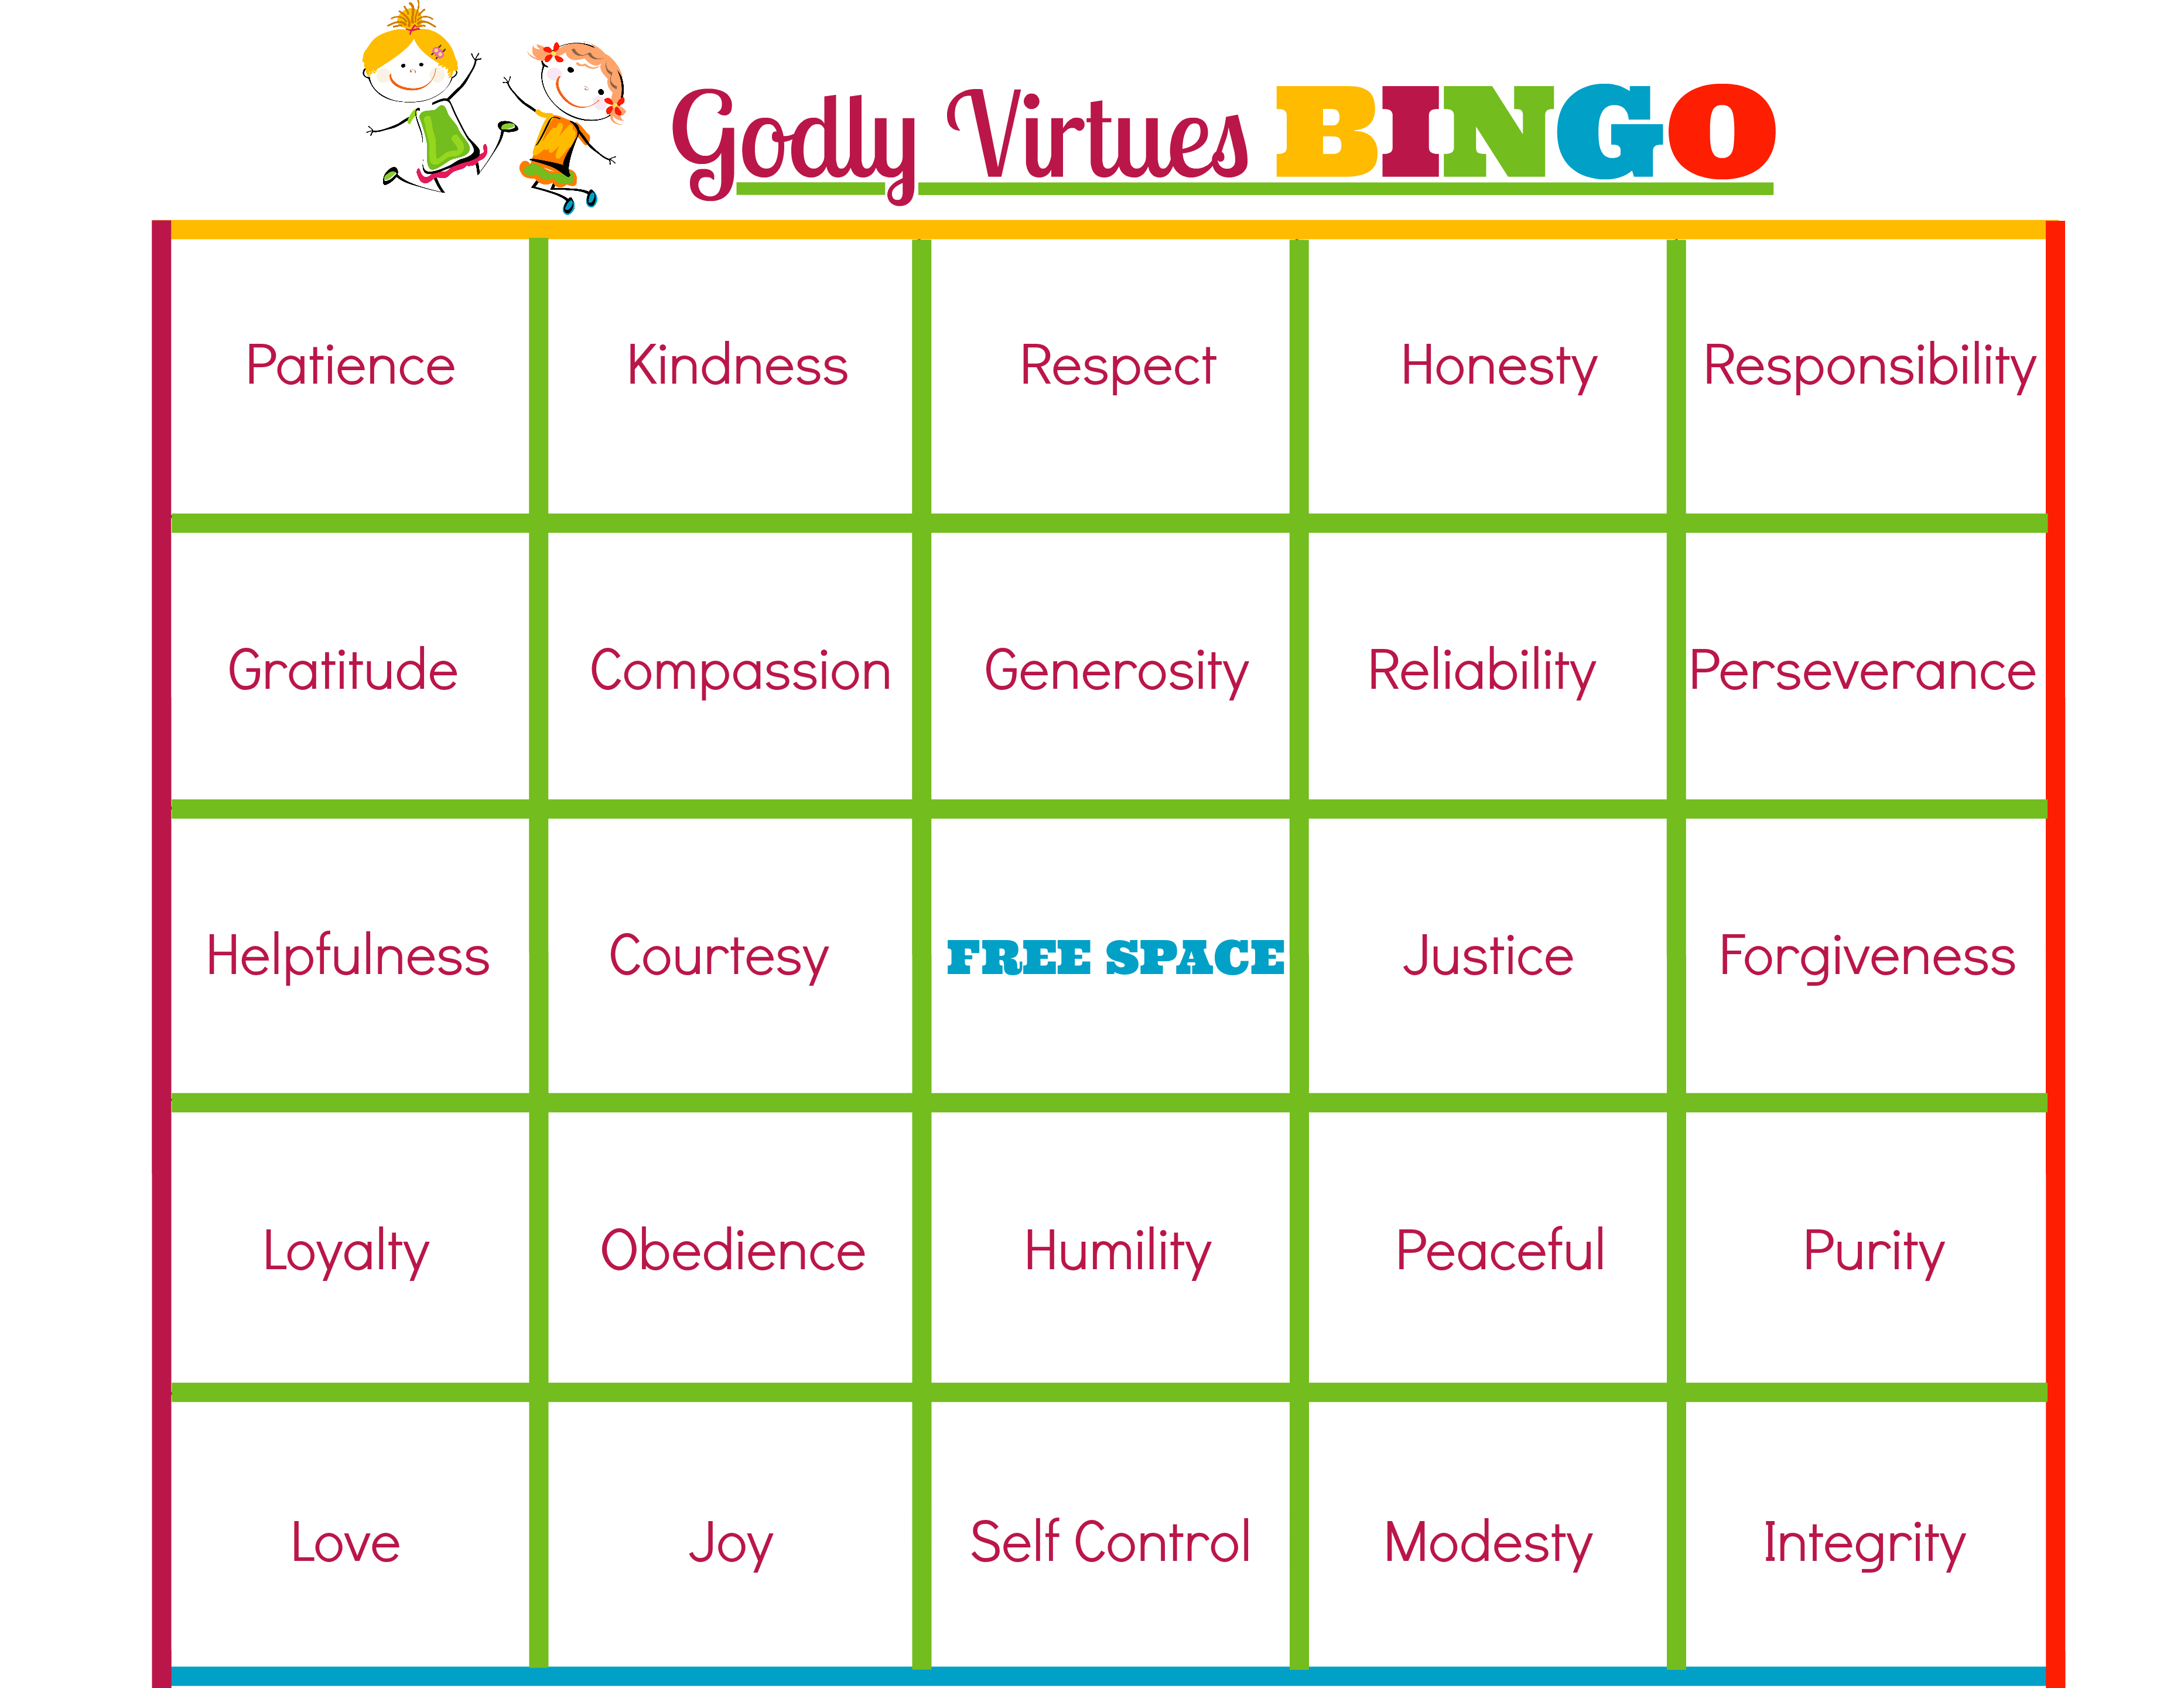 Bible Bingo Printable (91+ Images In Collection) Page 1 - Bible Bingo Free Printables